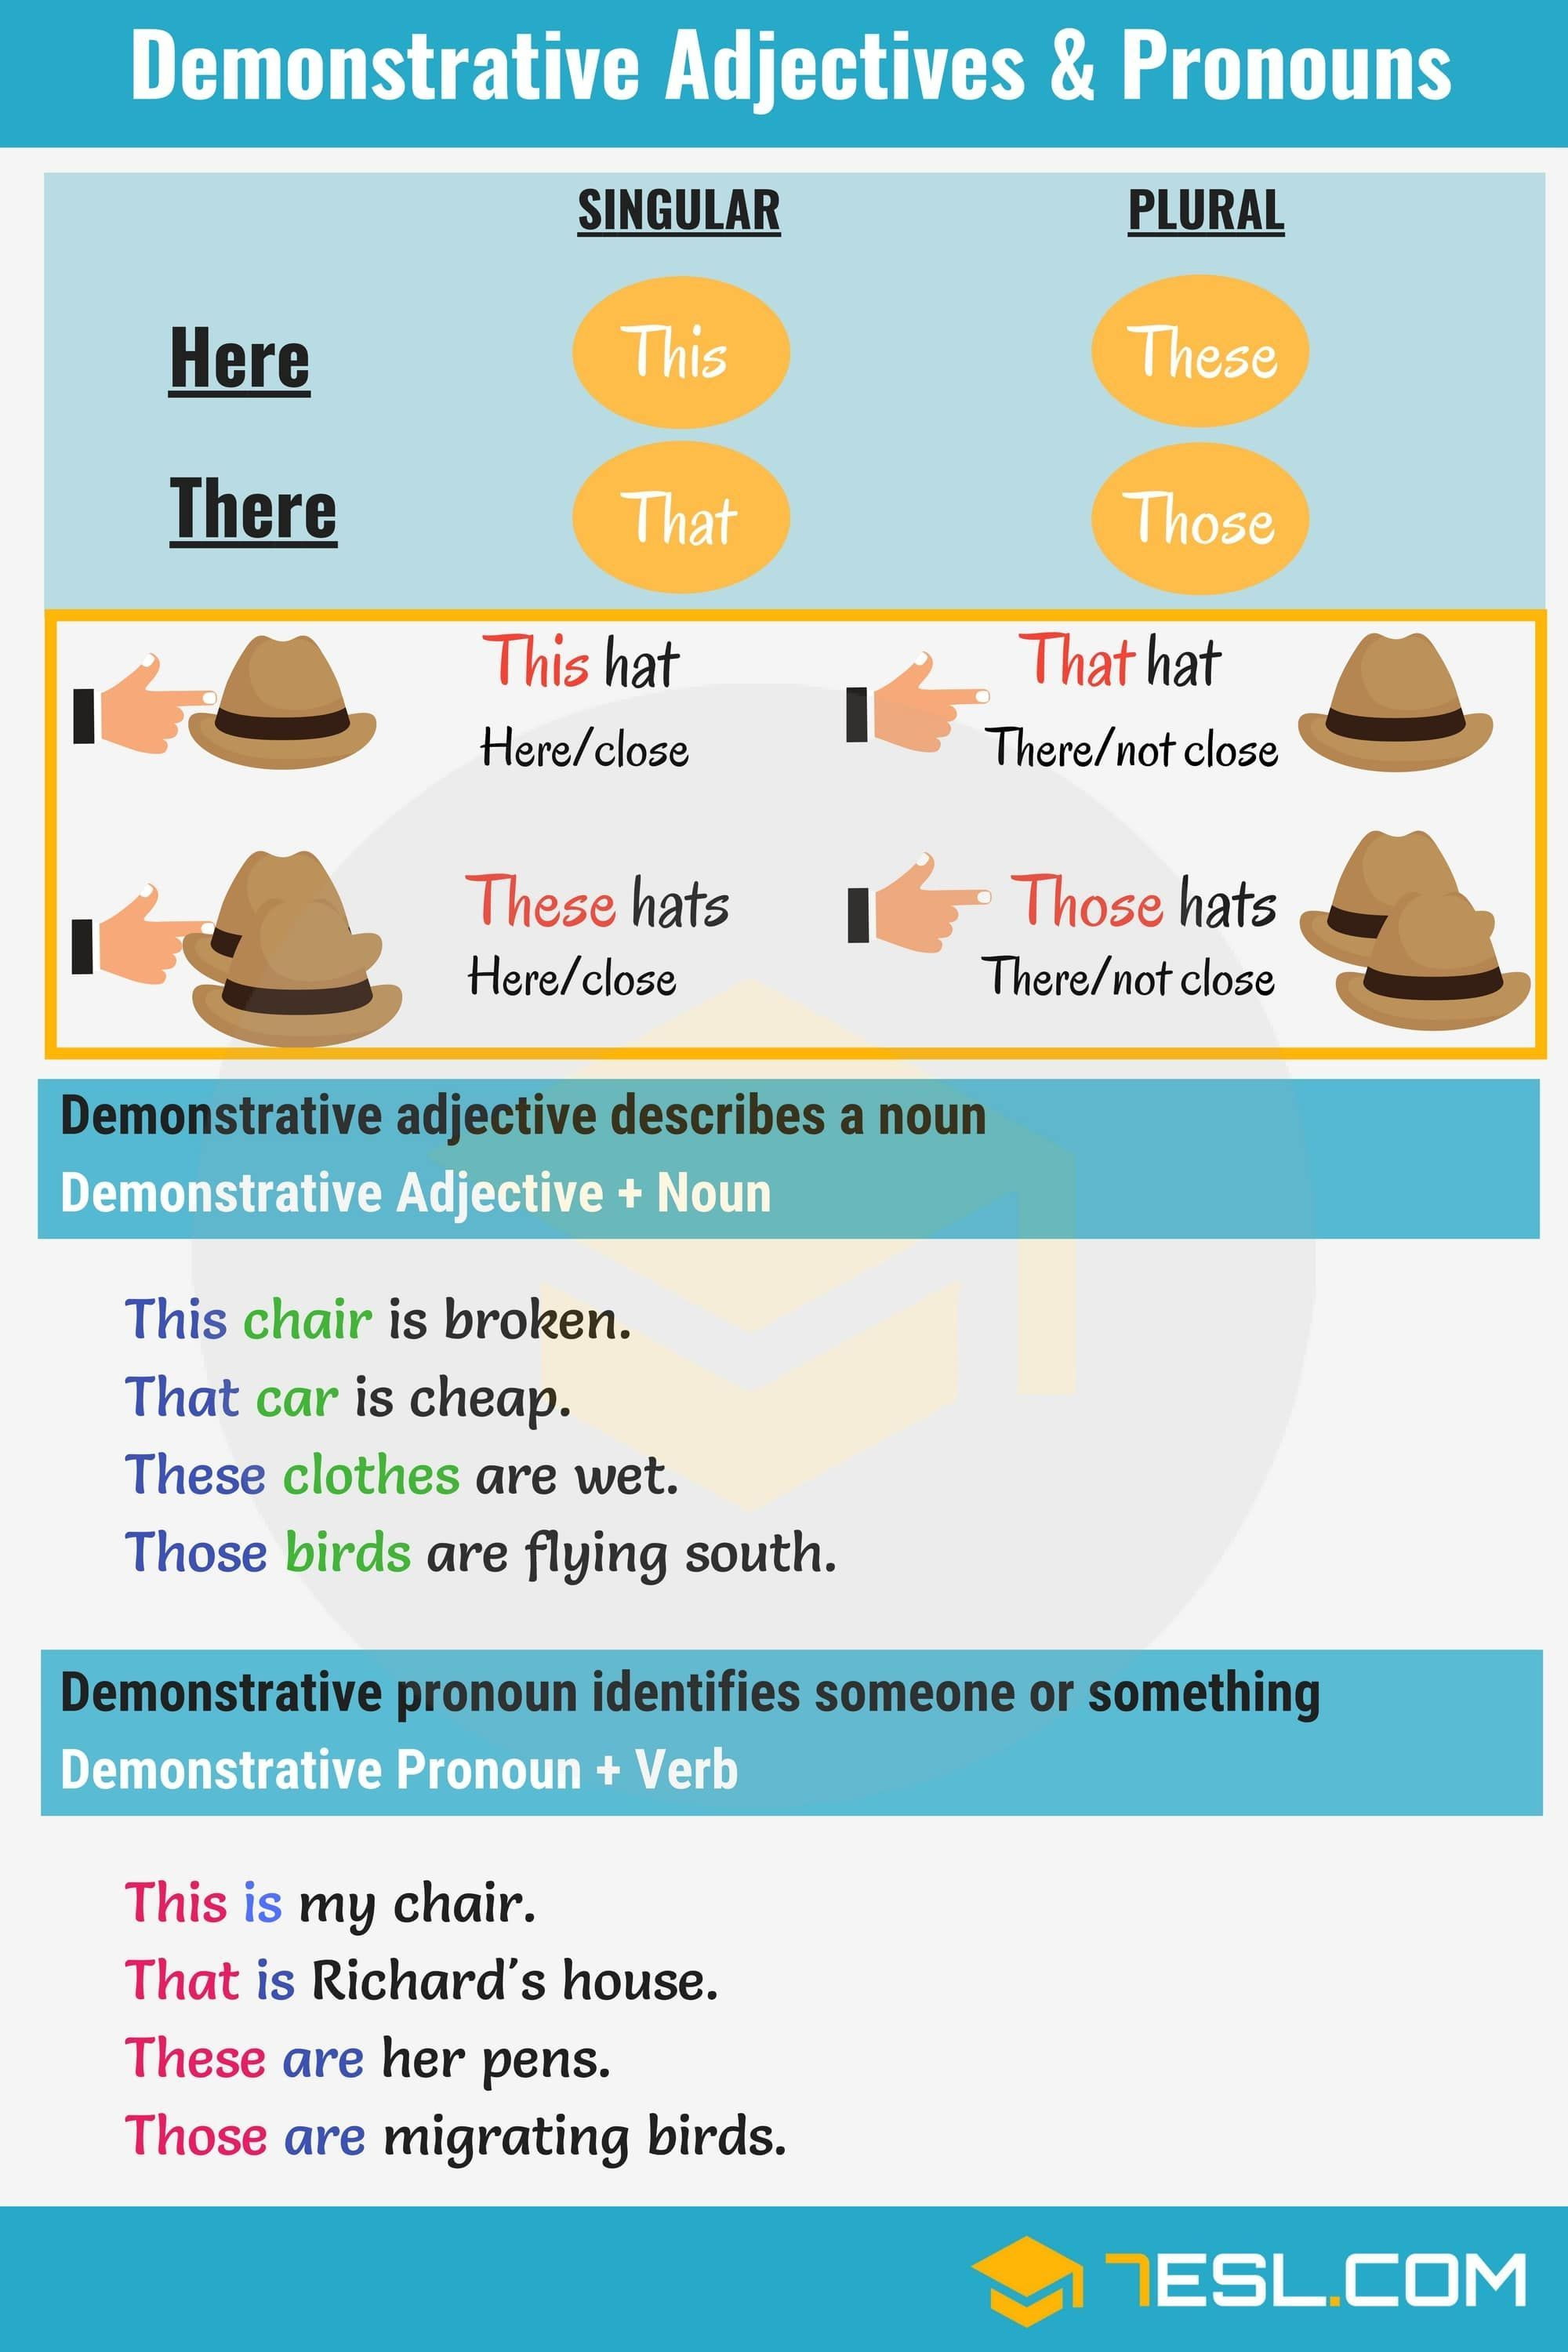 0shares Learn how to use demonstrative adjectives and pronouns in ...